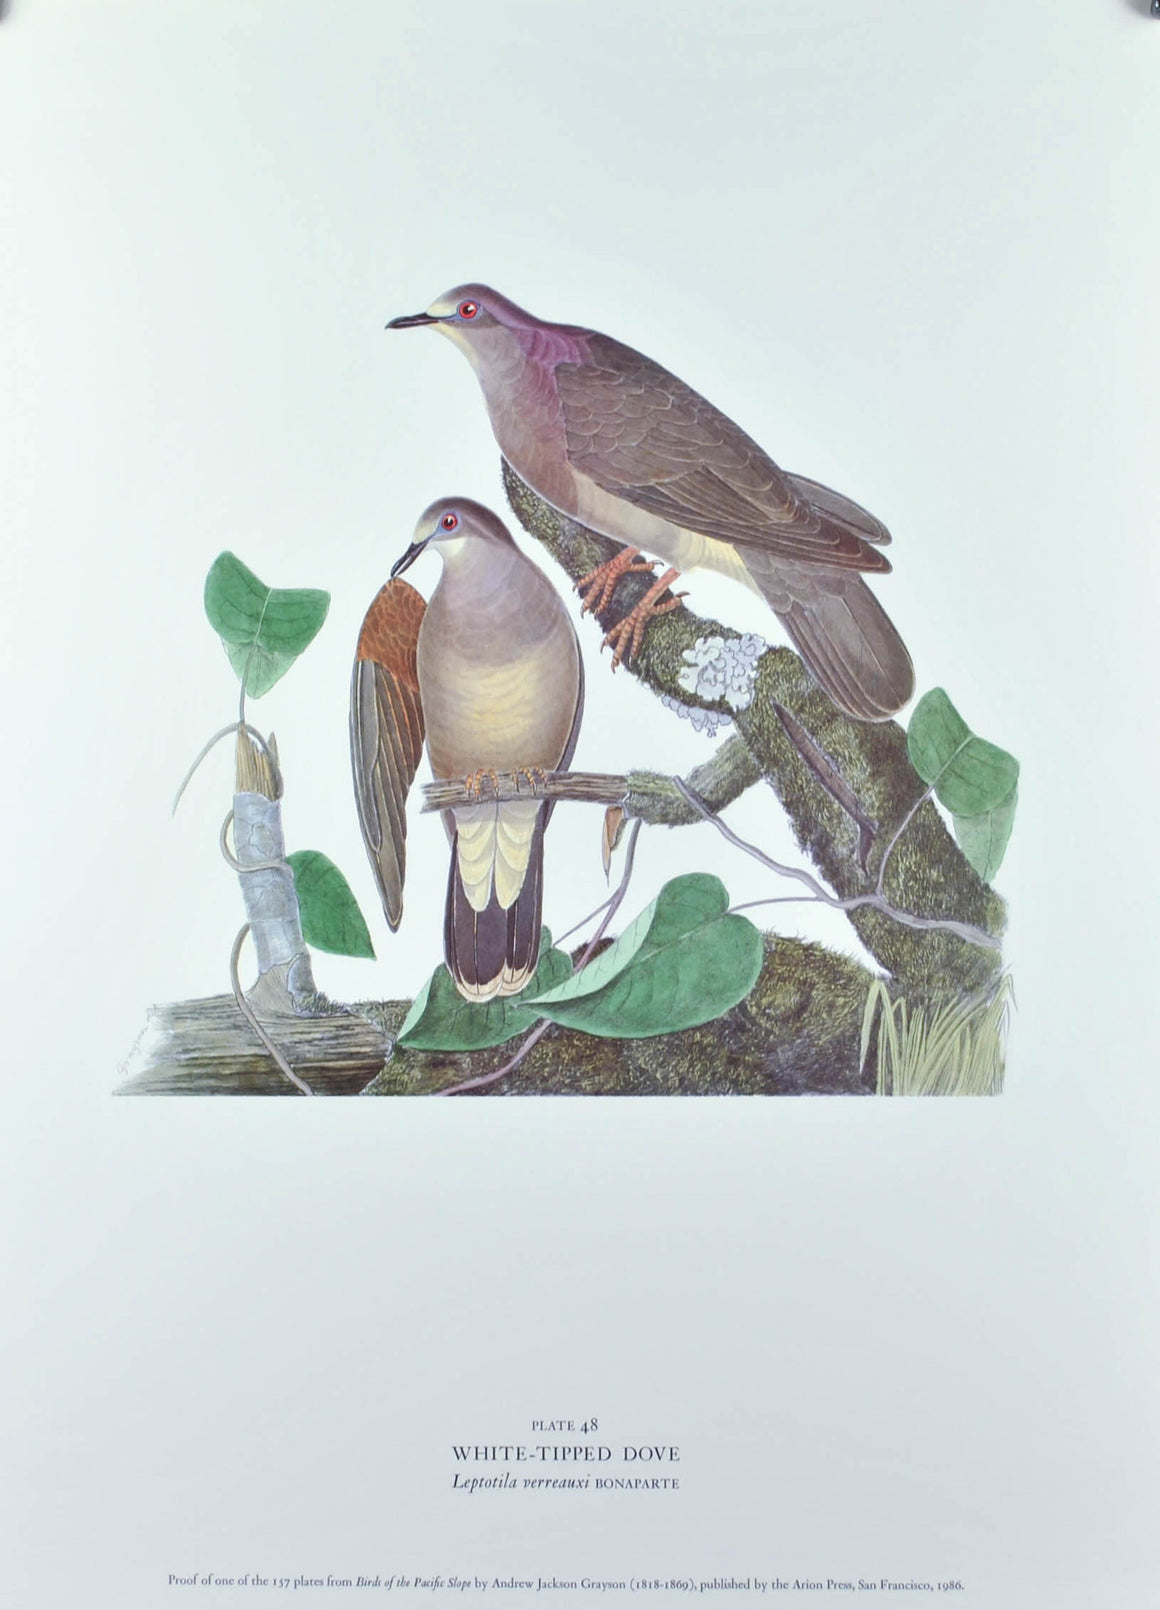 White-Tipped Dove Andrew Jackson Grayson Bird Print 1986 Birds of the Pacific